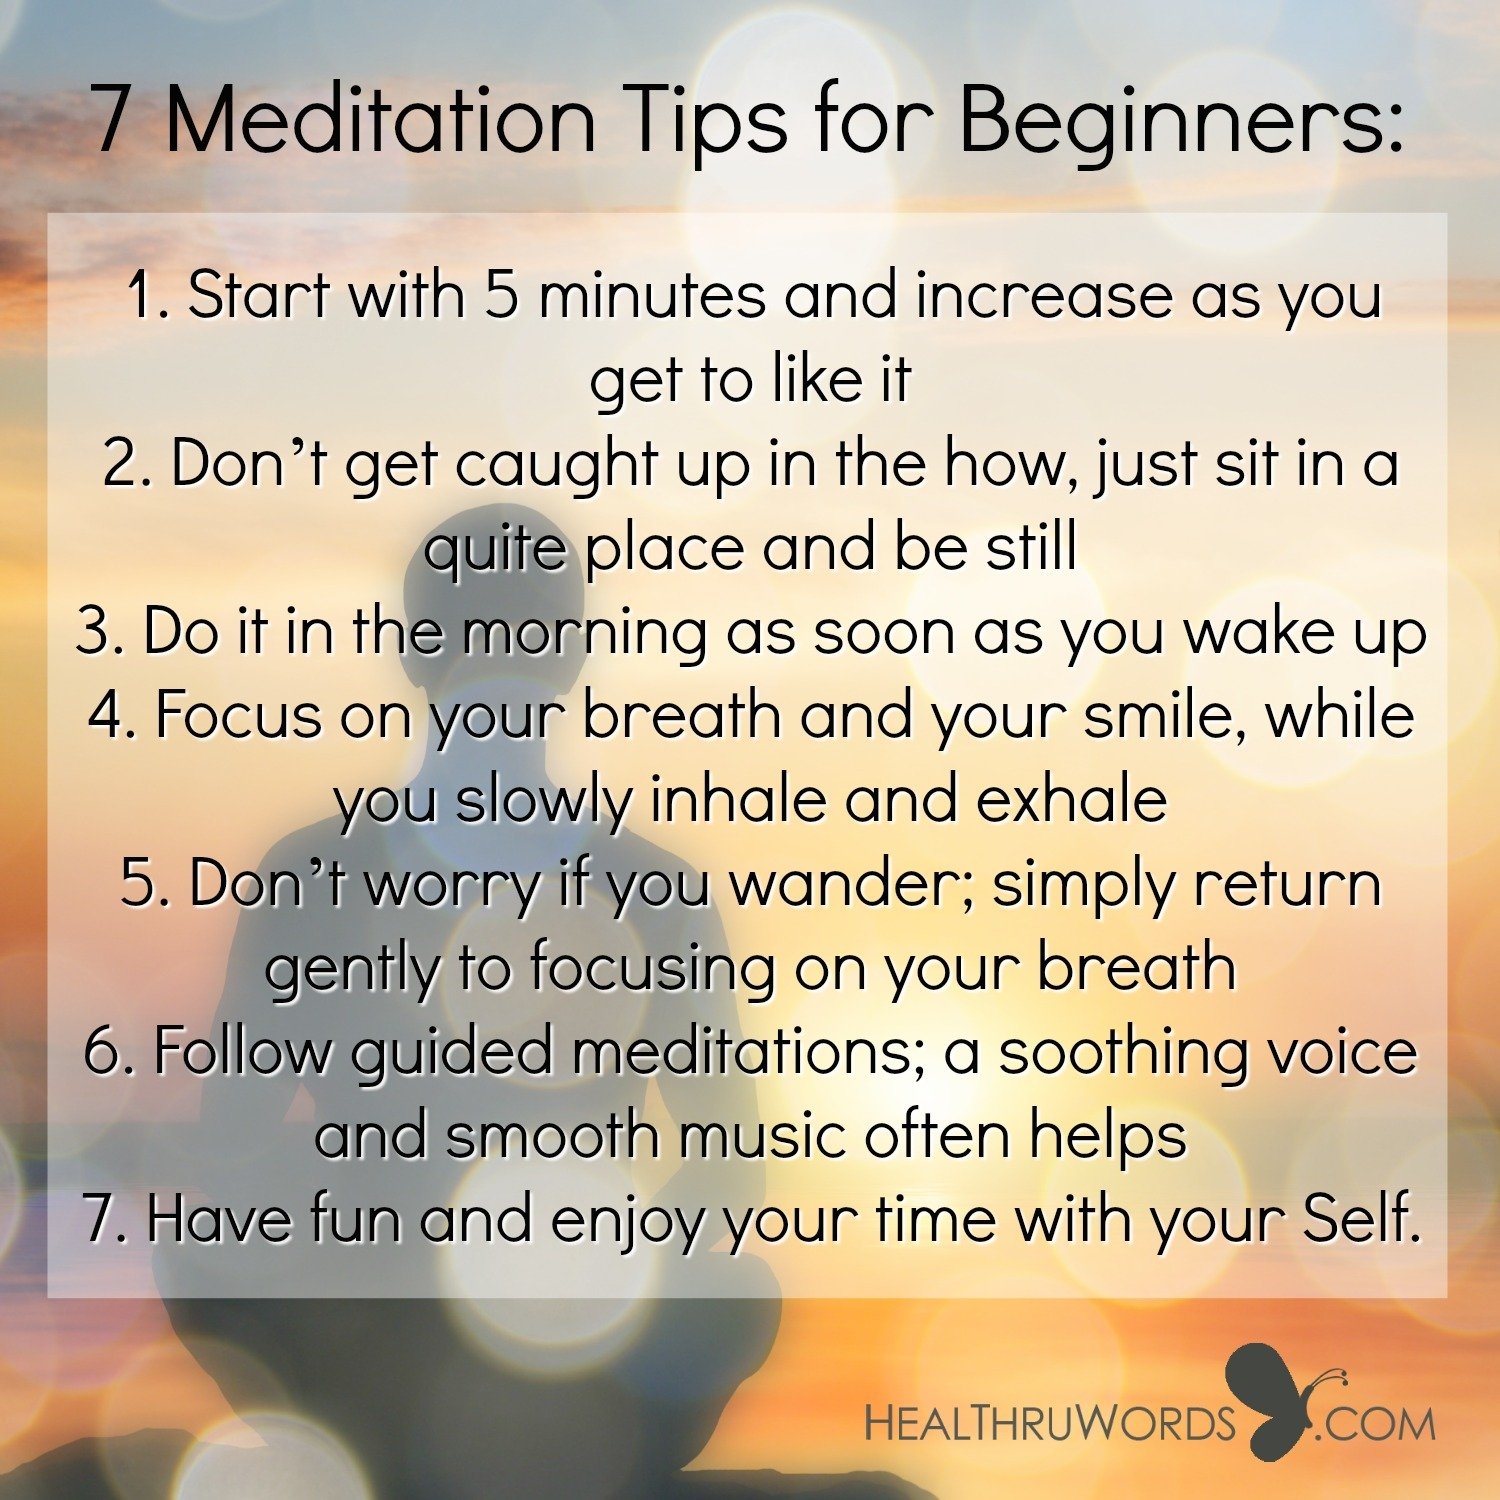 Inspirational Image: 7 Meditation Tips for Beginners